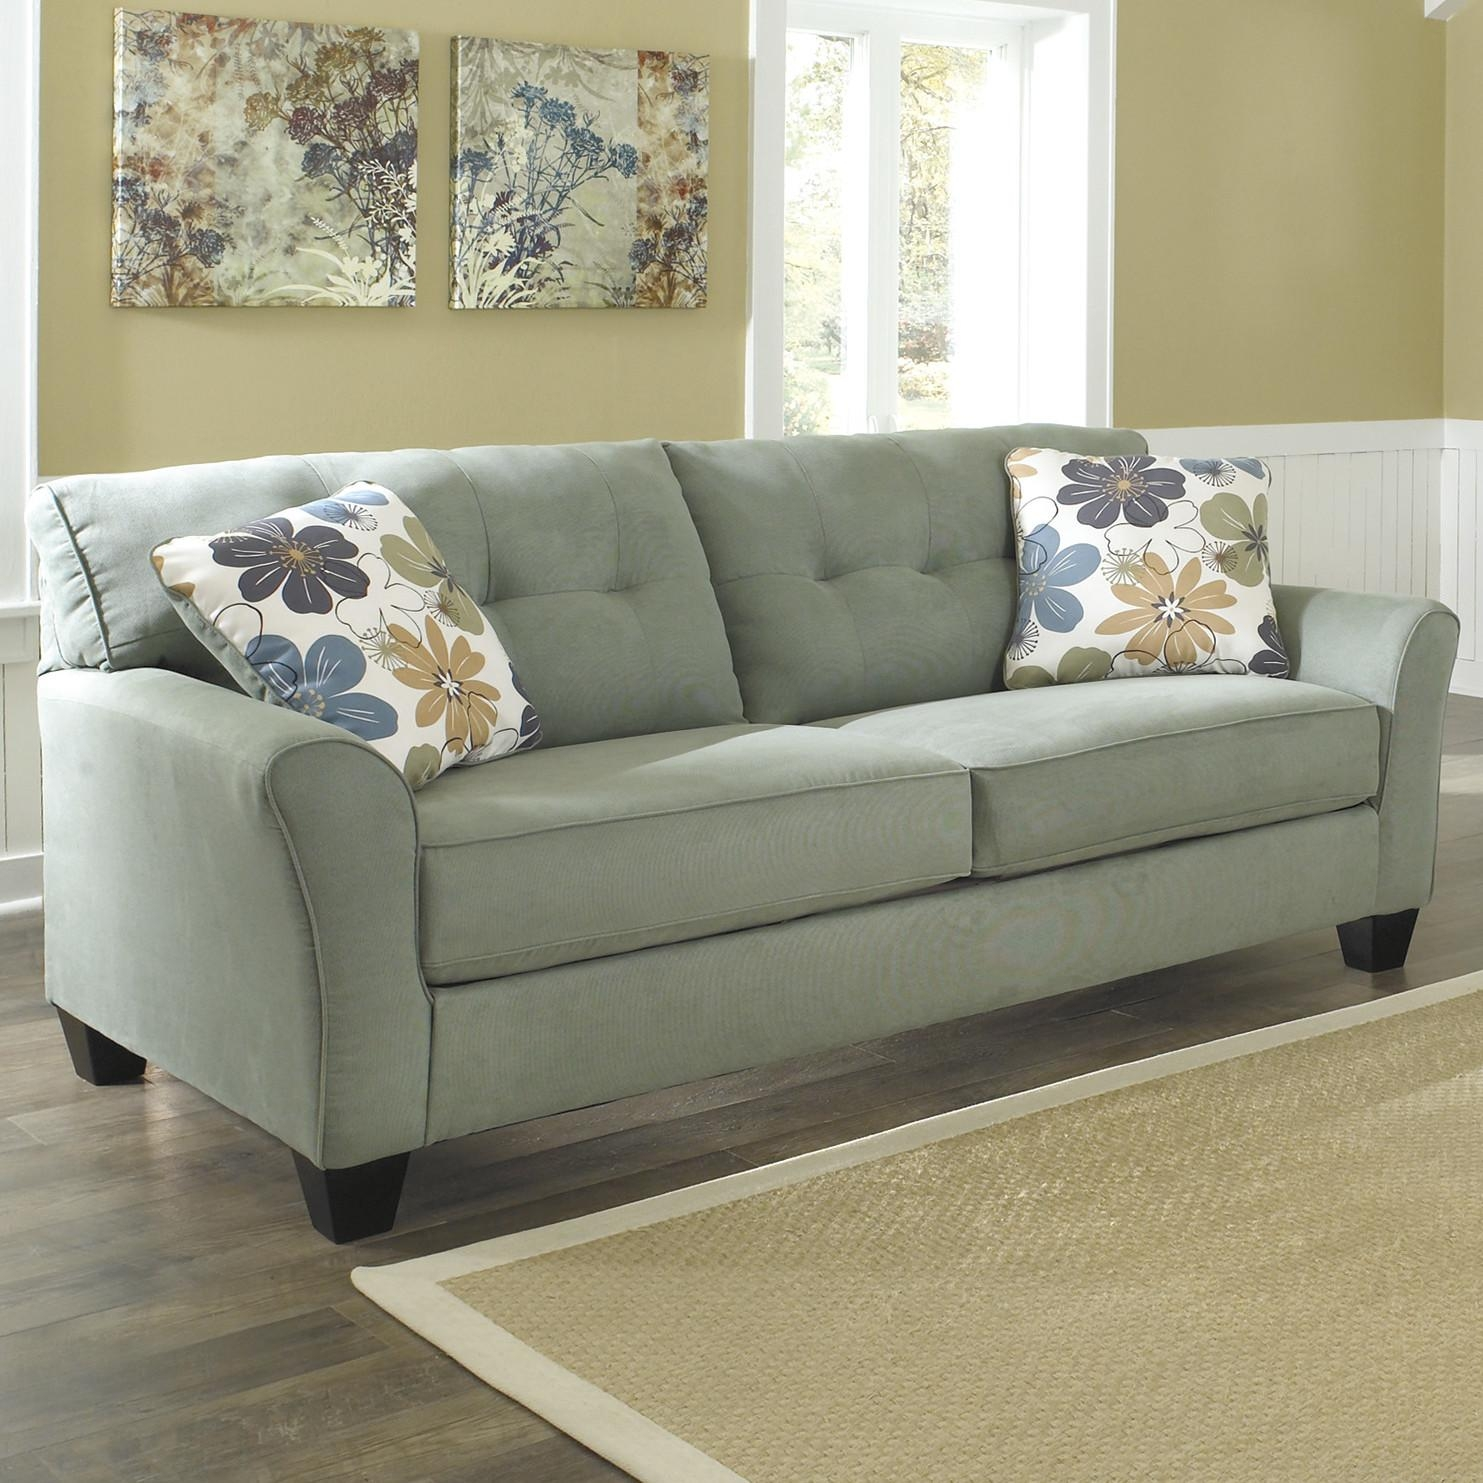 Your Guide To Space Saver Sofas For Tiny Spaces Within Small Scale Sofas (View 3 of 20)